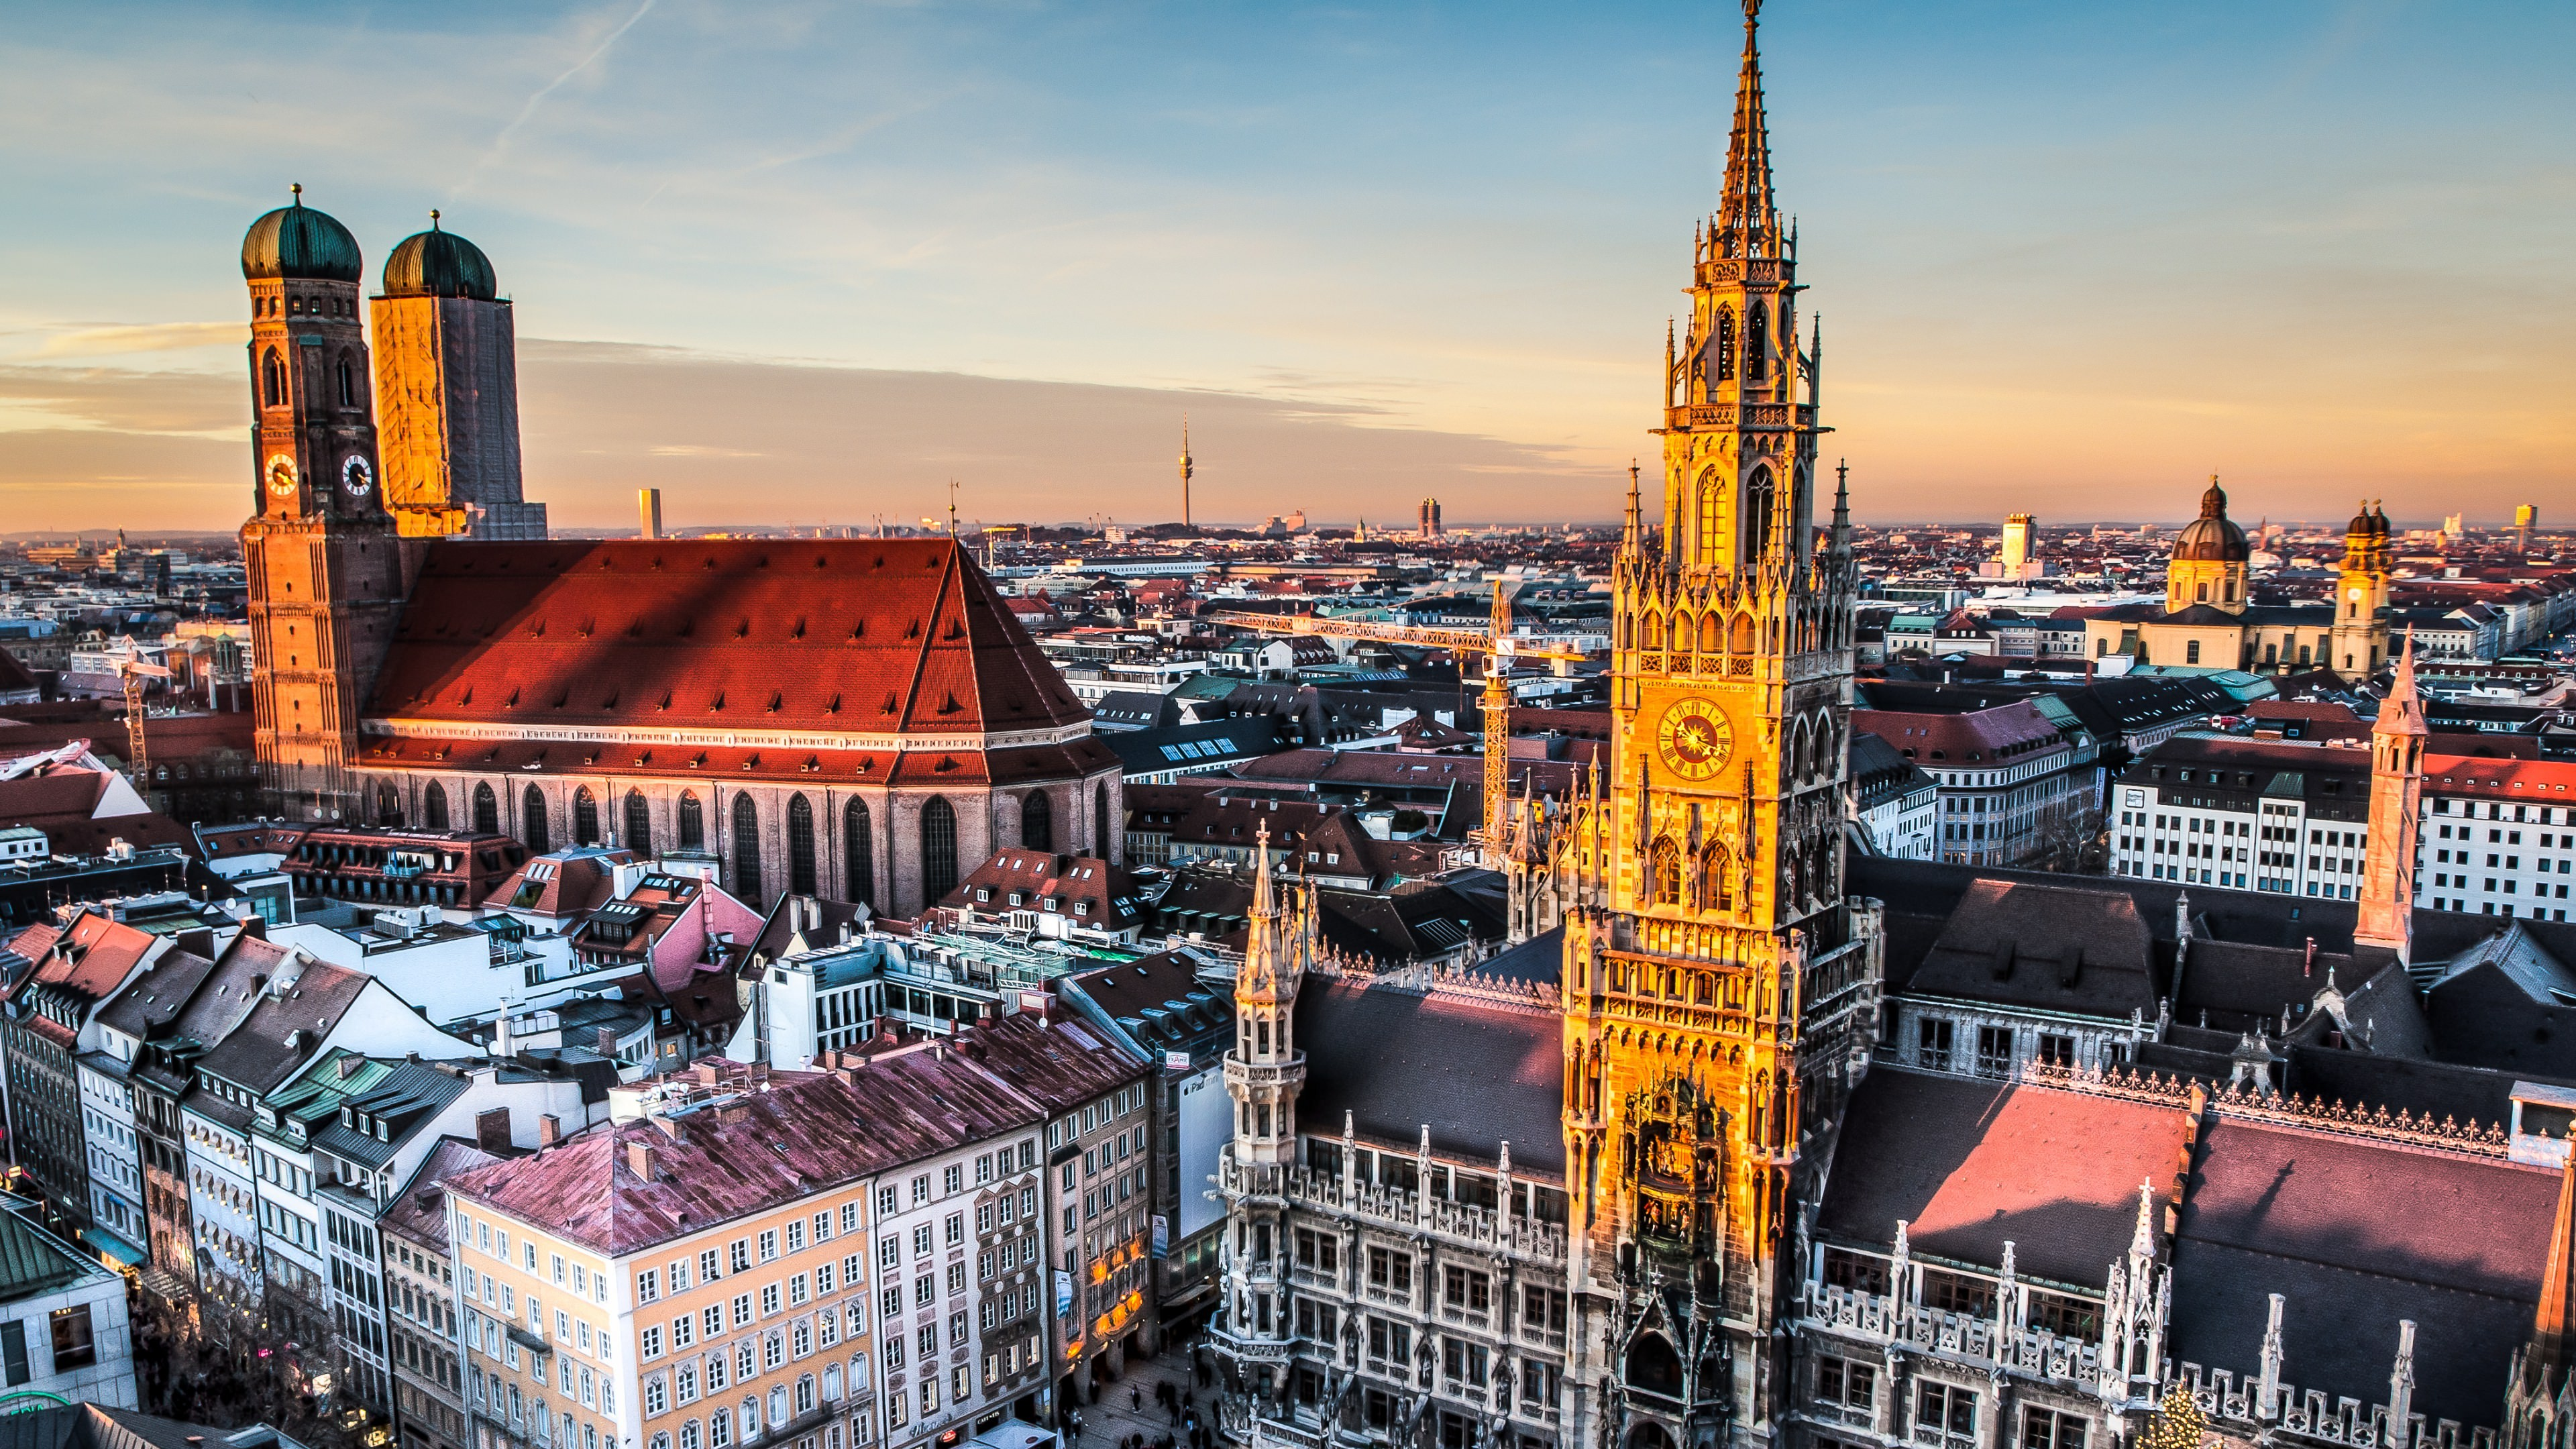 400 800 Hd Wallpaper Munich Skyline 4k Wallpaper